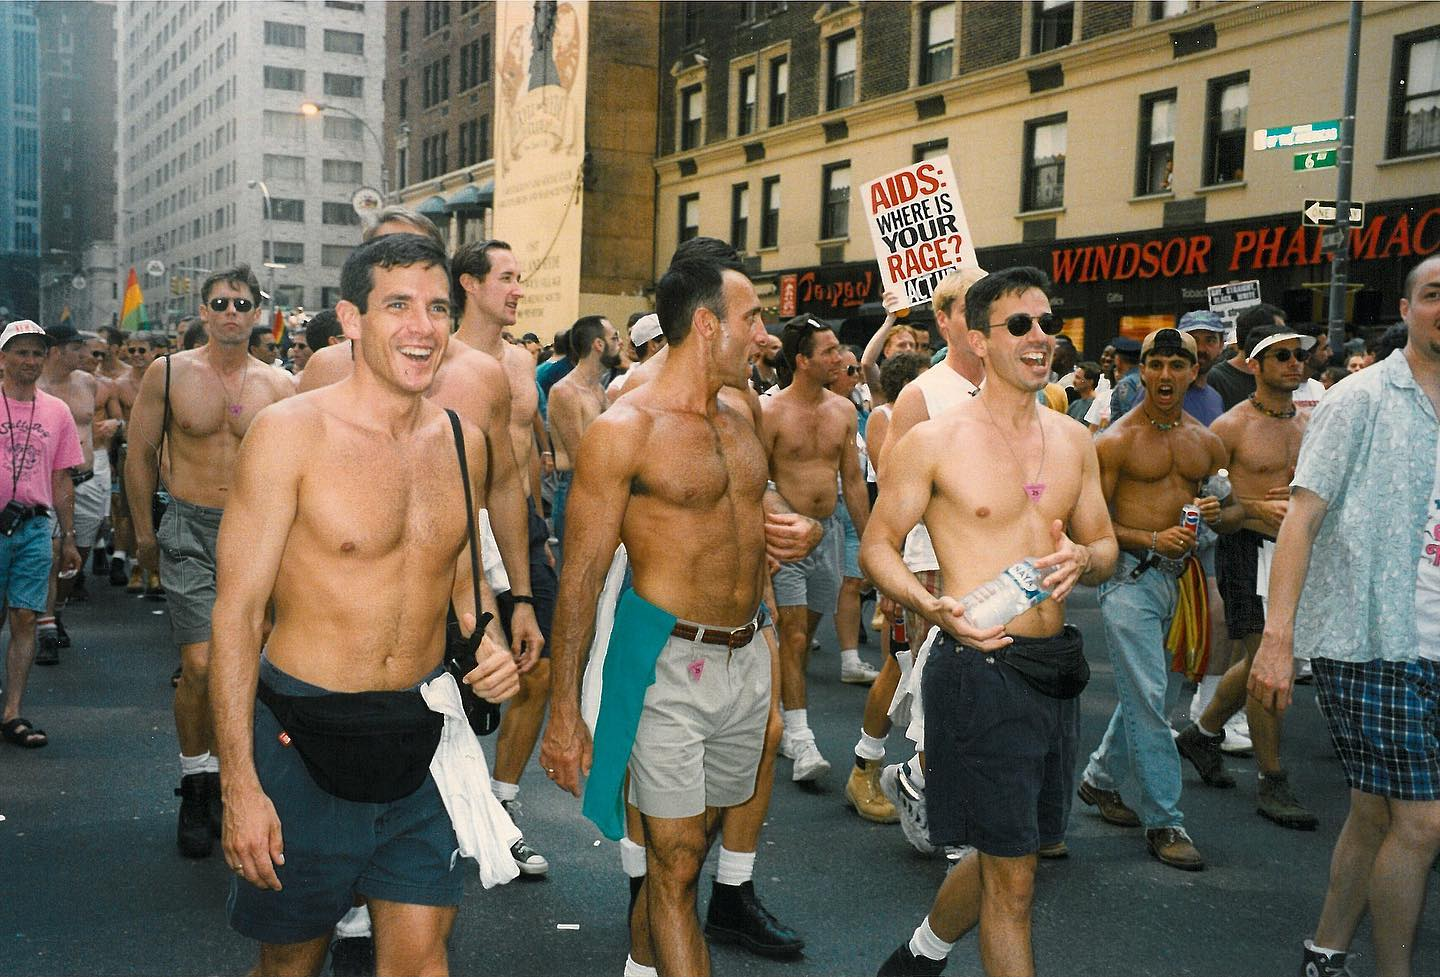 """Here, participants march down 6th Avenue during a #PrideParade in 1994, with a sign that reads """"AIDS: WHERE IS YOUR RAGE? ACT UP"""" This is one of the slogans of the activist group, ACT UP (AIDS Coalition Group to Unleash Power).  Perhaps one of the most well known AIDS advocacy groups, they describe themselves as such: """"ACT UP is a diverse, non-partisan group of individuals, united in anger and committed to direct action to end the AIDS crisis. We meet with government officials, we distribute the latest medical information, we protest and demonstrate. We are not silent.    ACT UP was formed in response to social neglect, government negligence and the complacency of the medical establishment during the 1980s. Soon it found itself needing to fight corporate greed, lack of solidarity and various forms of stigma and discrimination at home and abroad. While ACT UP has an incredible history, HIV/AIDS is not history. HIV/AIDS is very much with us. And we call on you to join our fight to end AIDS.""""  ACT UP was founded in March 1987, when powerhouse activist and writer Larry Kramer gave a speech at the Lesbian and Gay Community Services Center in NYC. According to """"AIDS Demographics"""" by Douglas Crimp, Kramer posed the question, """"Do we want to start a new organization devoted solely to political action?"""" To the enthusiasm of his audience, a meeting to form such an organization was arranged. Two days later, 300 people gathered to form @actupny.  Though Kramer passed away last summer at age 84, his legacy lives on through his written works and through the ongoing work of ACT UP."""